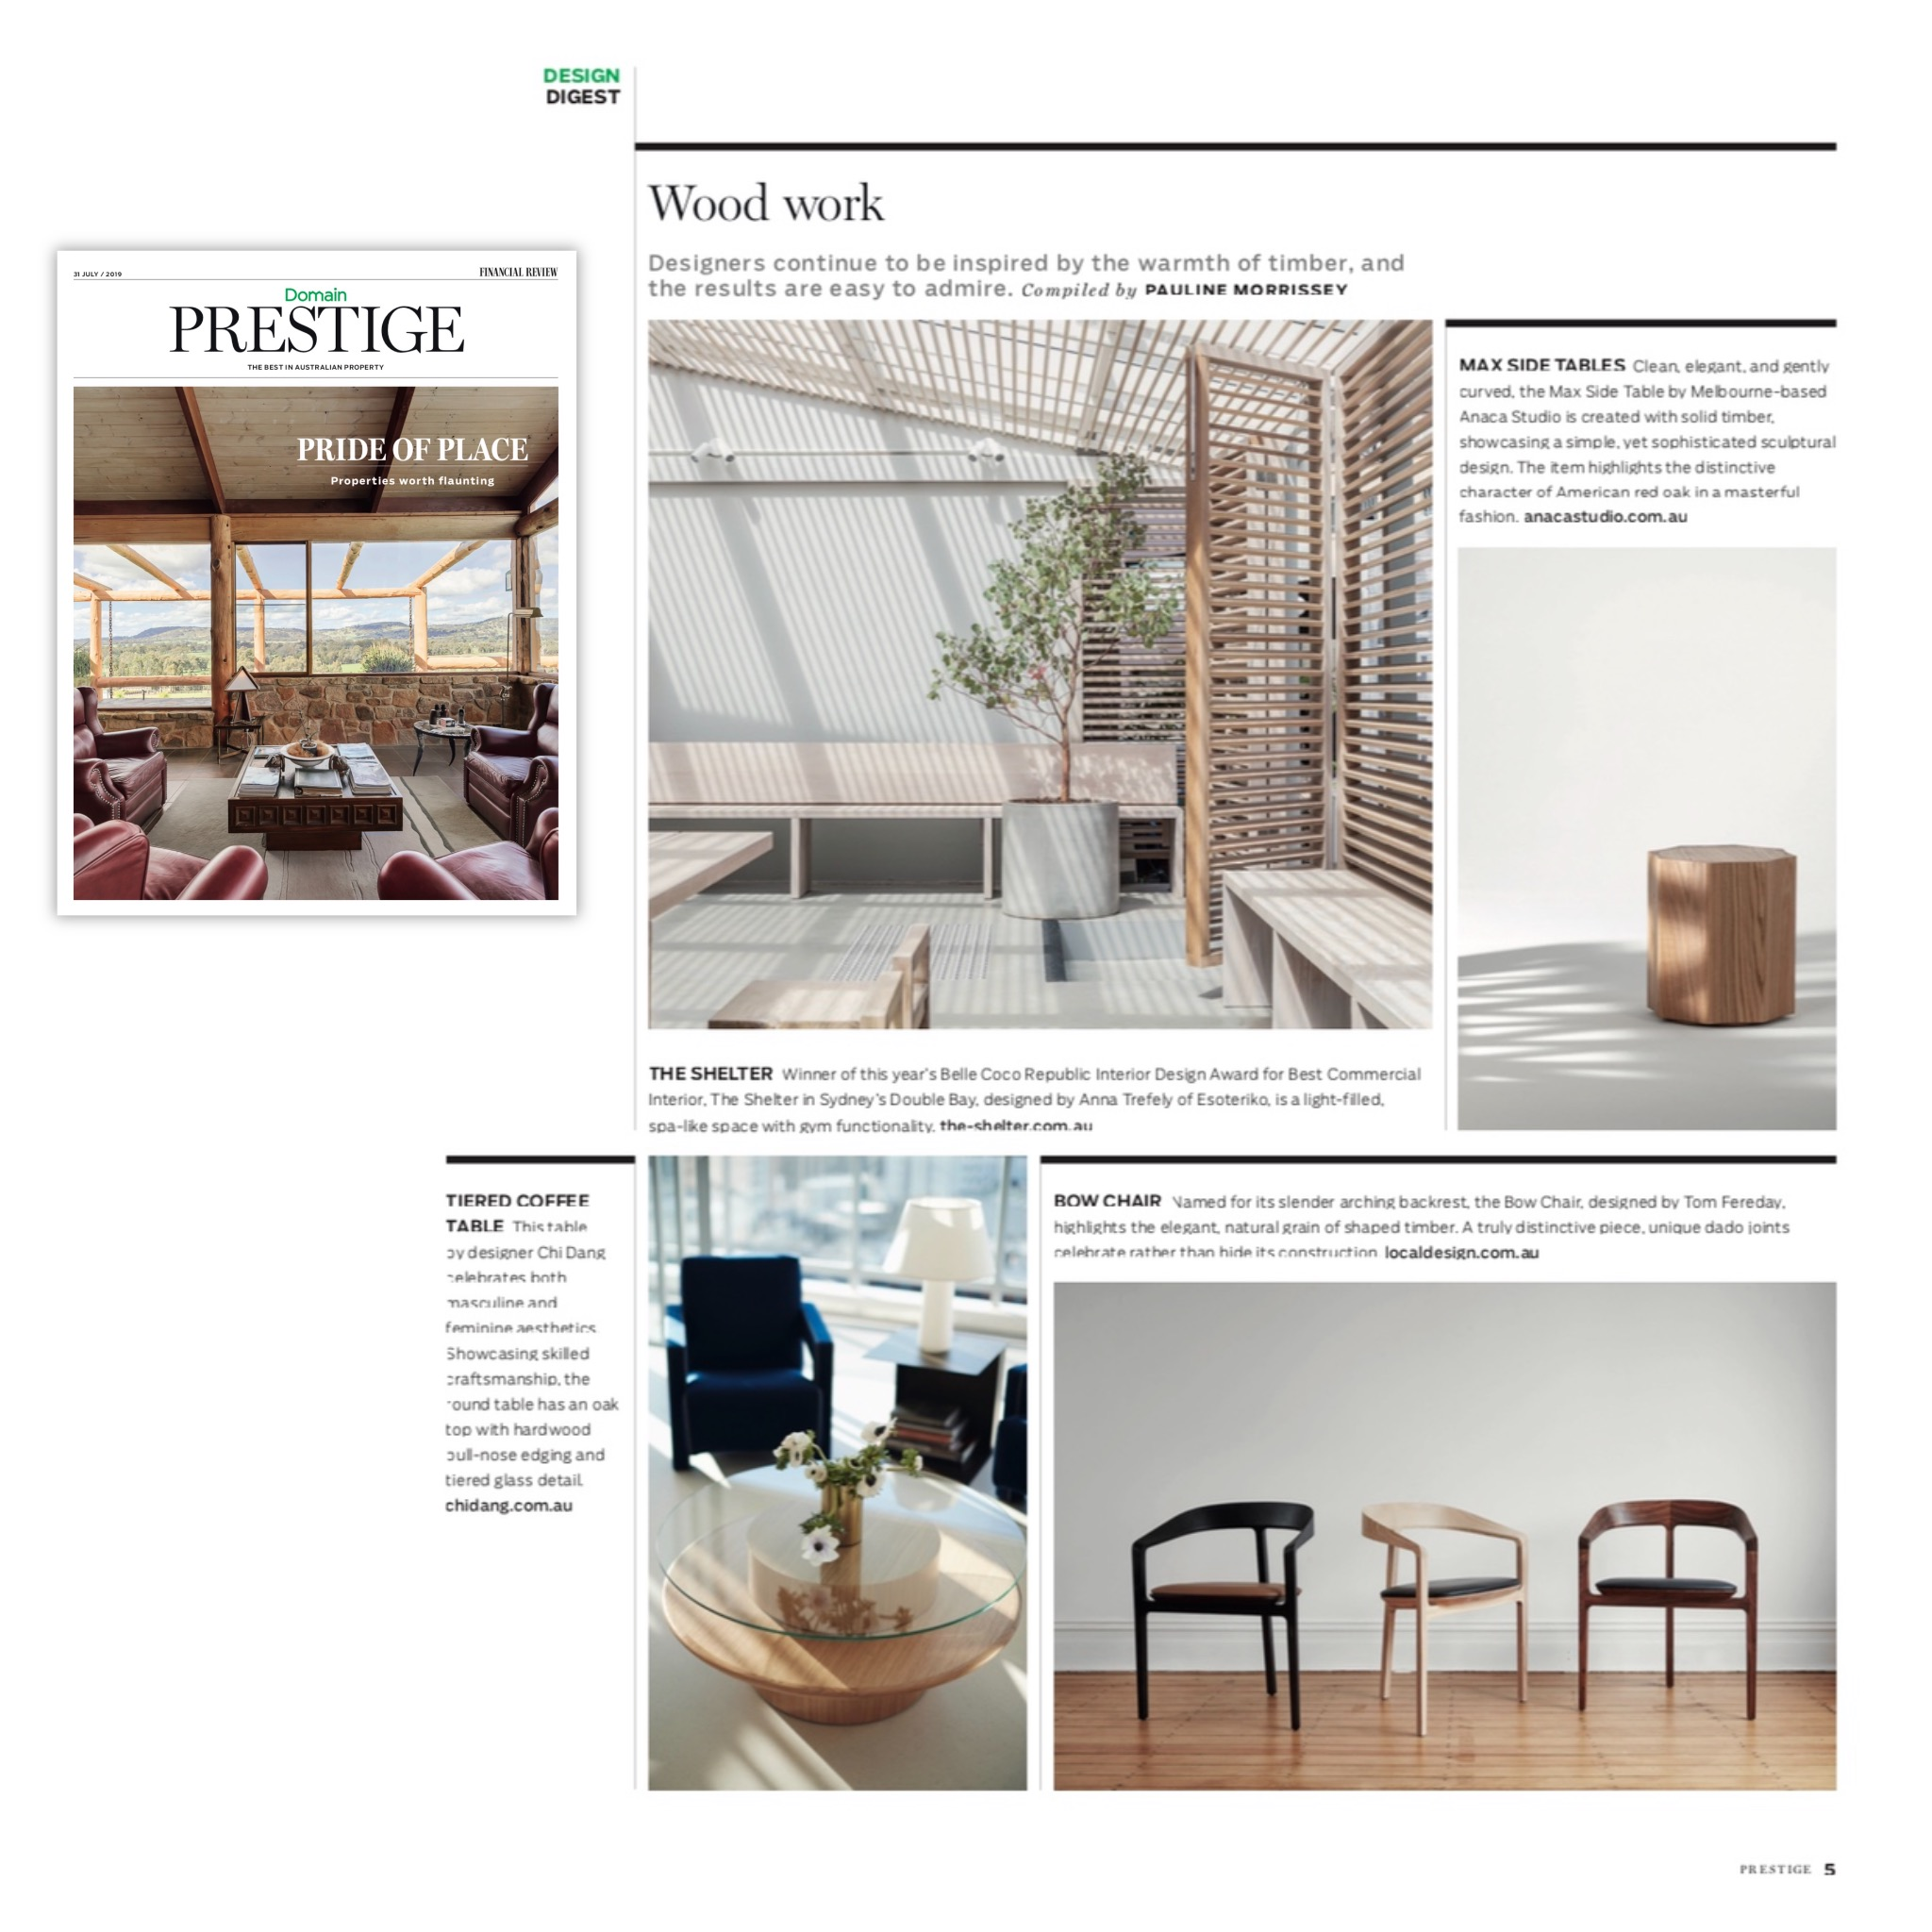 Financial Review - Domain Prestige - July 2019 - Max side tables